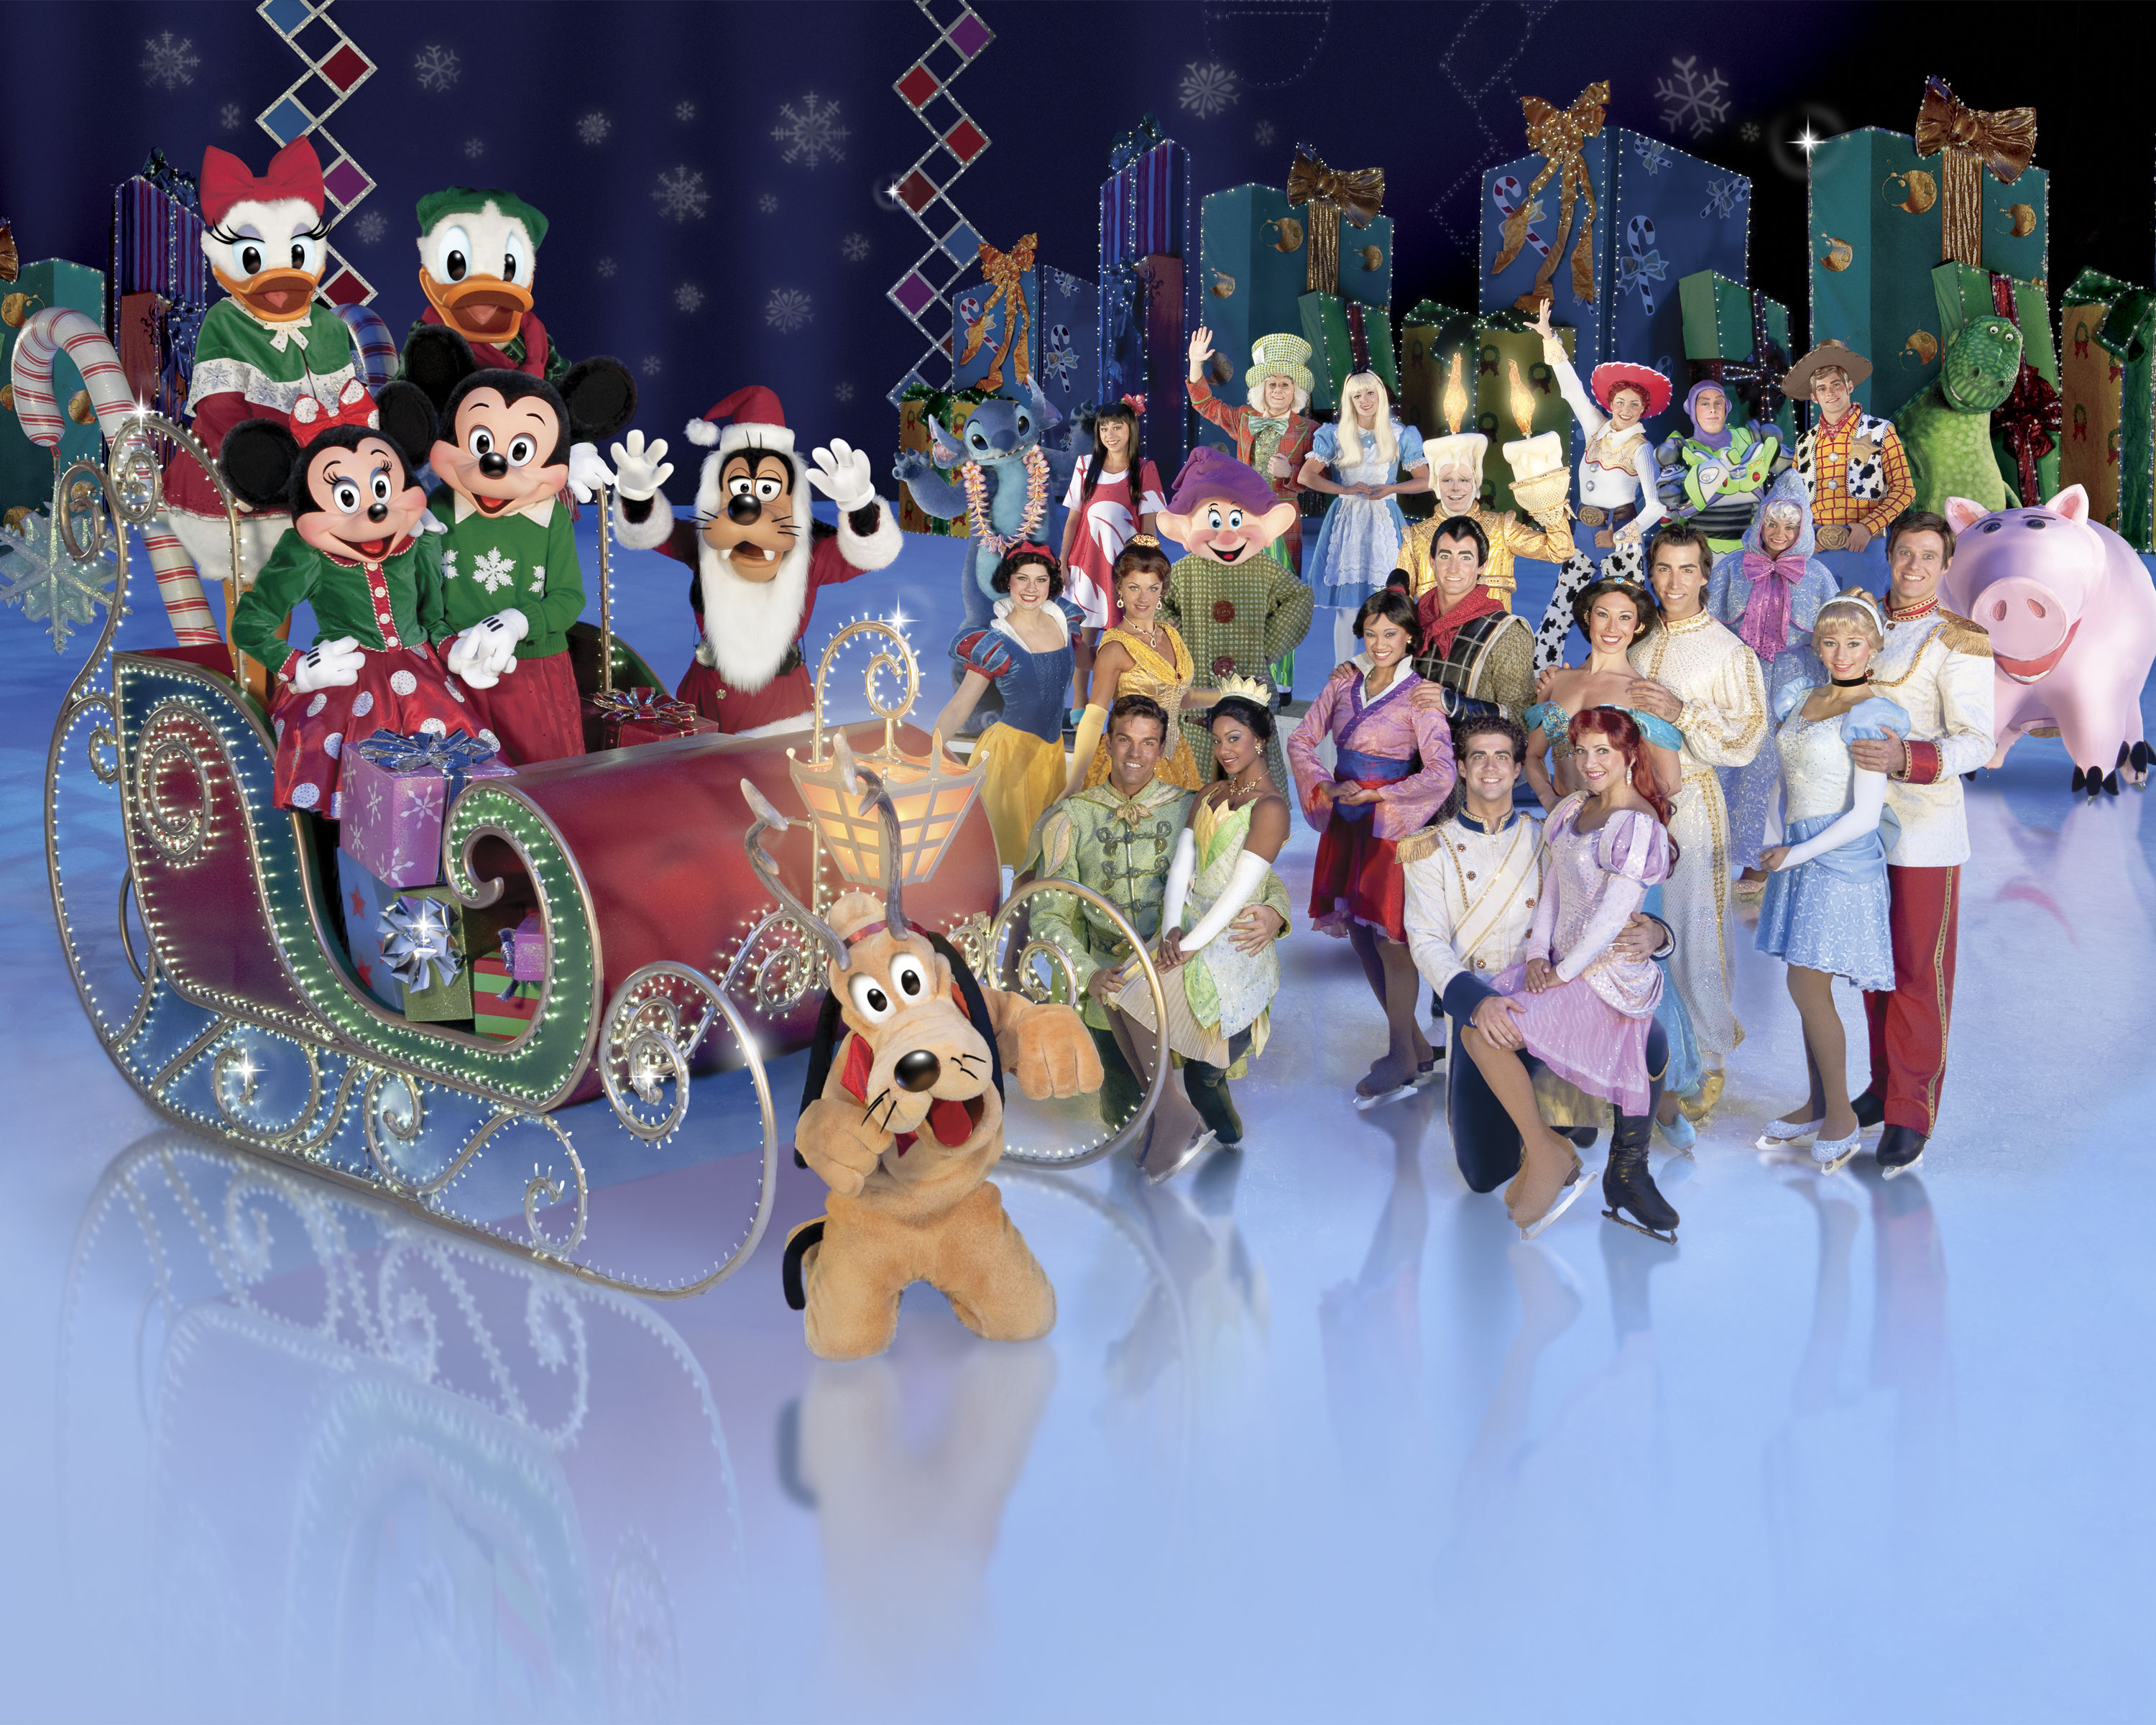 Enter to Win a Family 4 Pack of #DisneyOnIce Tickets in NY/NJ!